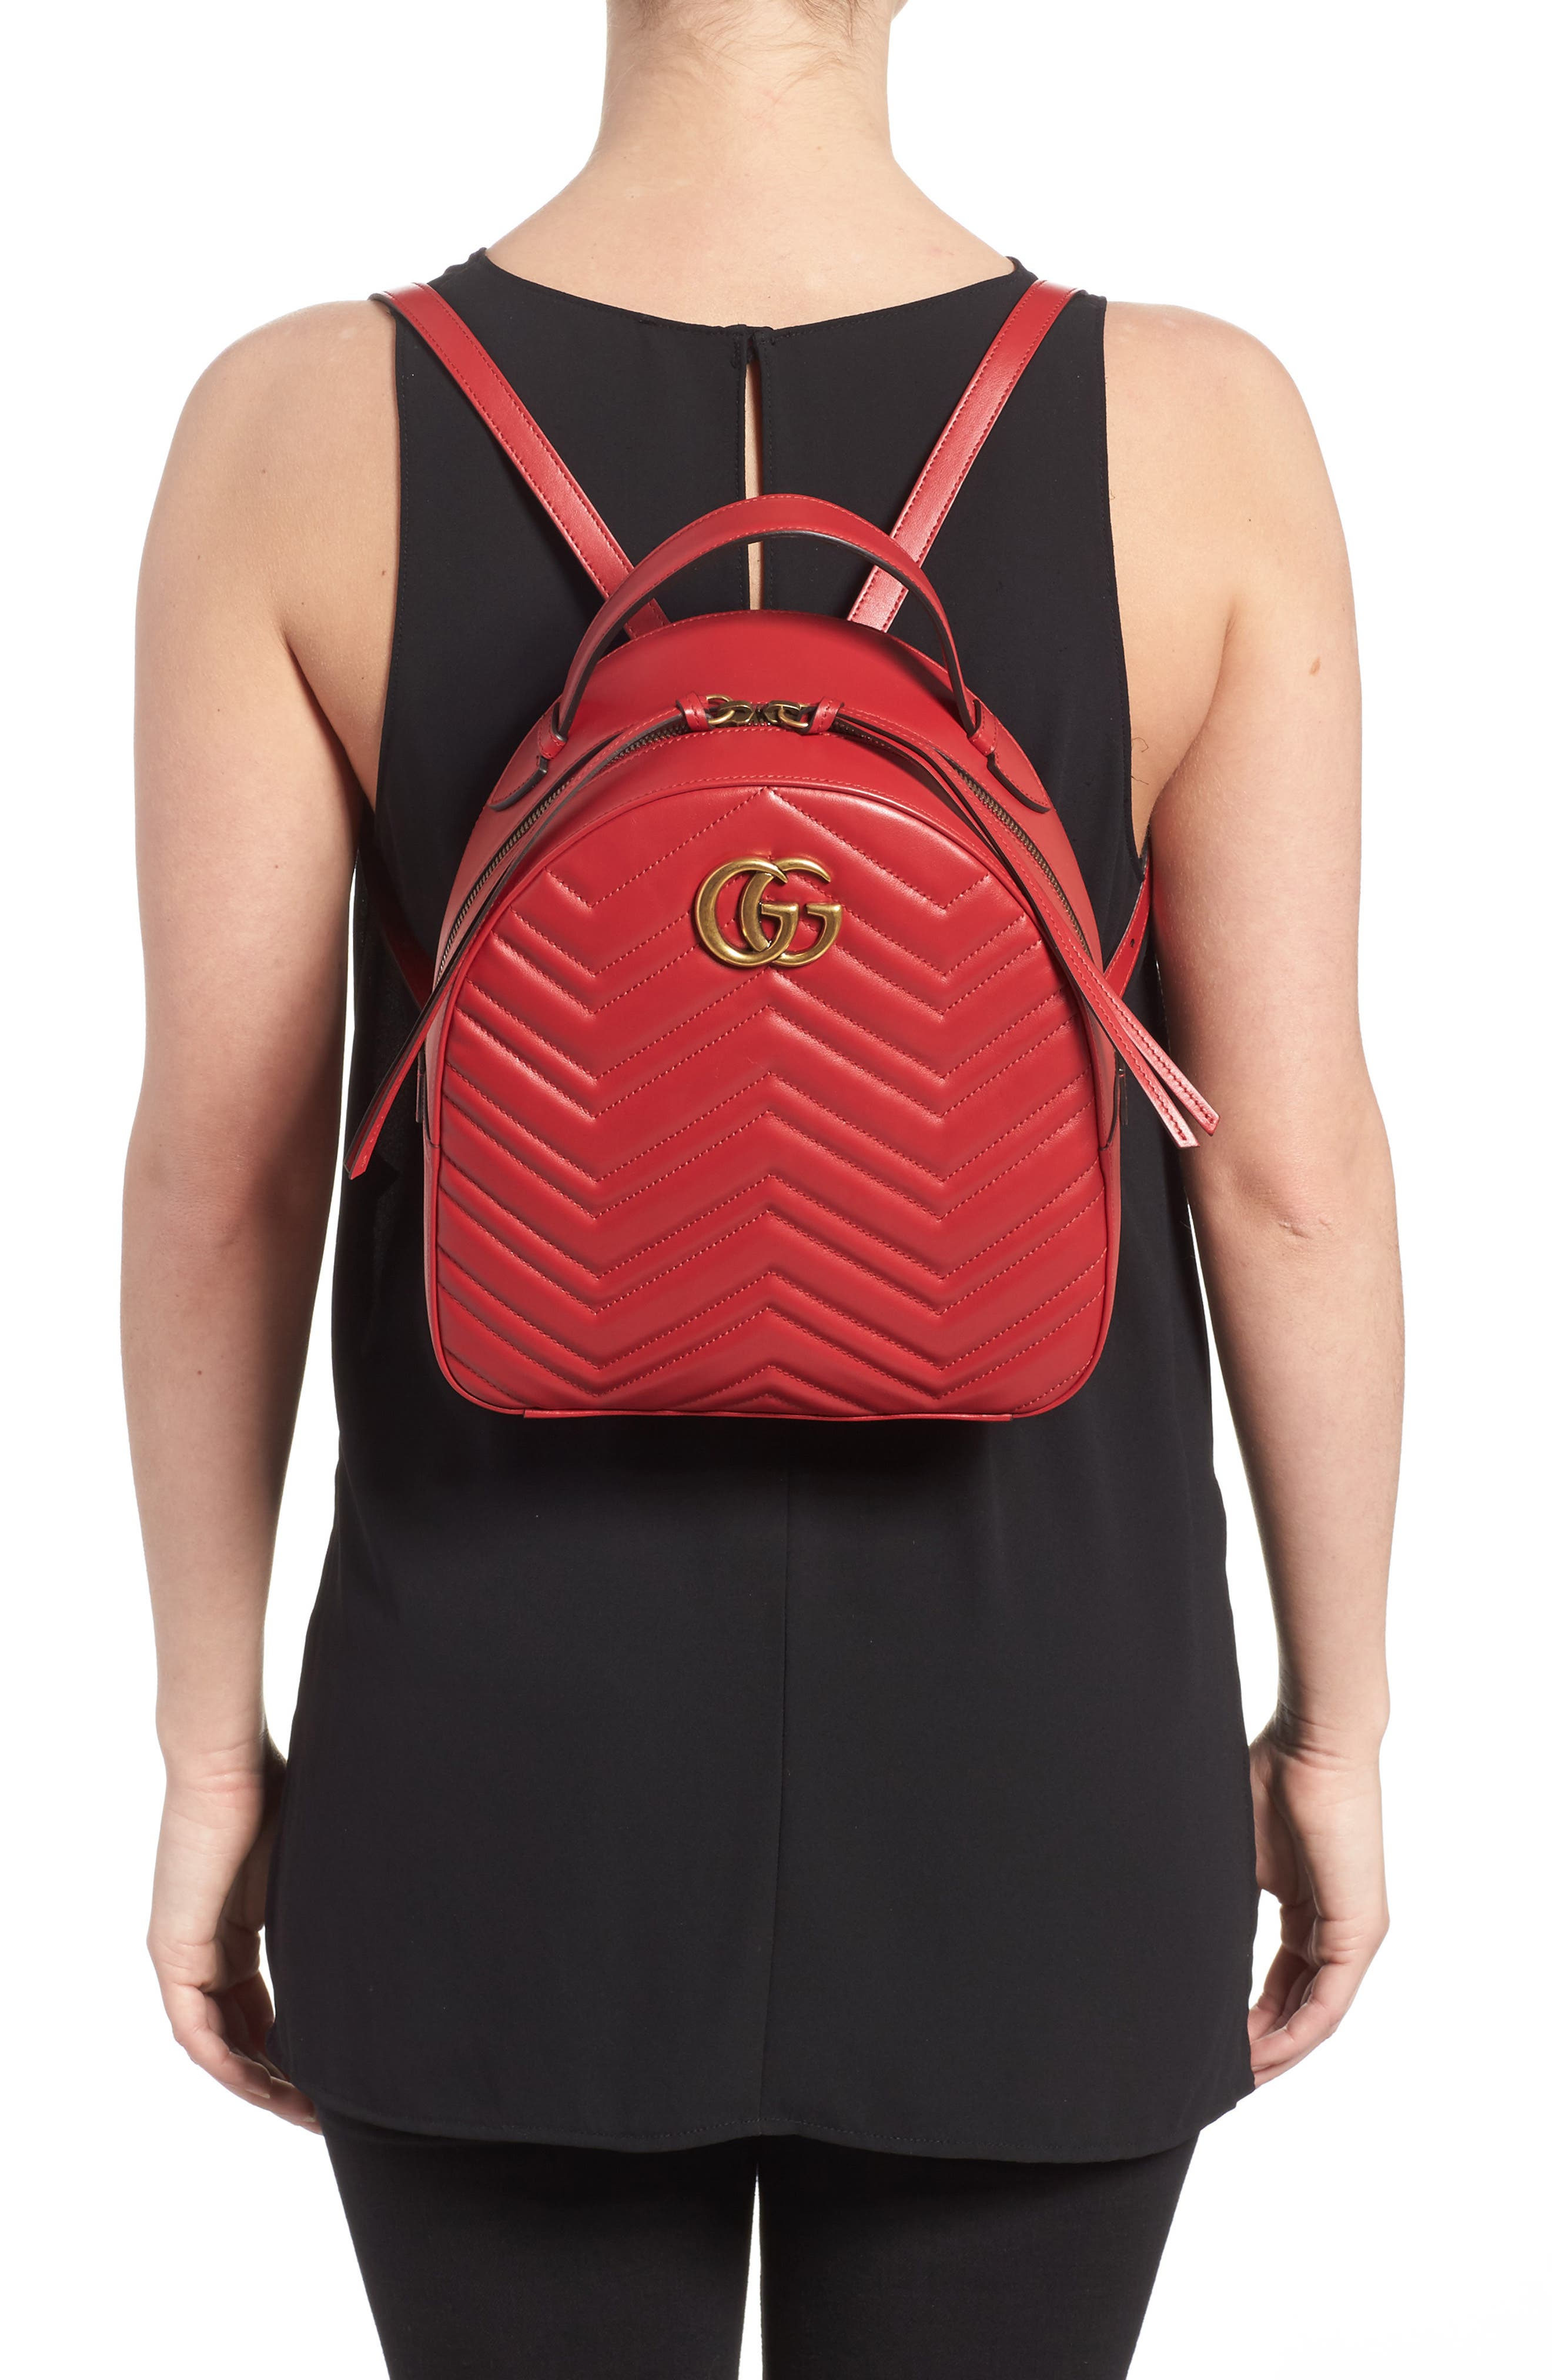 GG Marmont Matelassé Quilted Leather Backpack,                             Alternate thumbnail 2, color,                             HIBISCUS RED